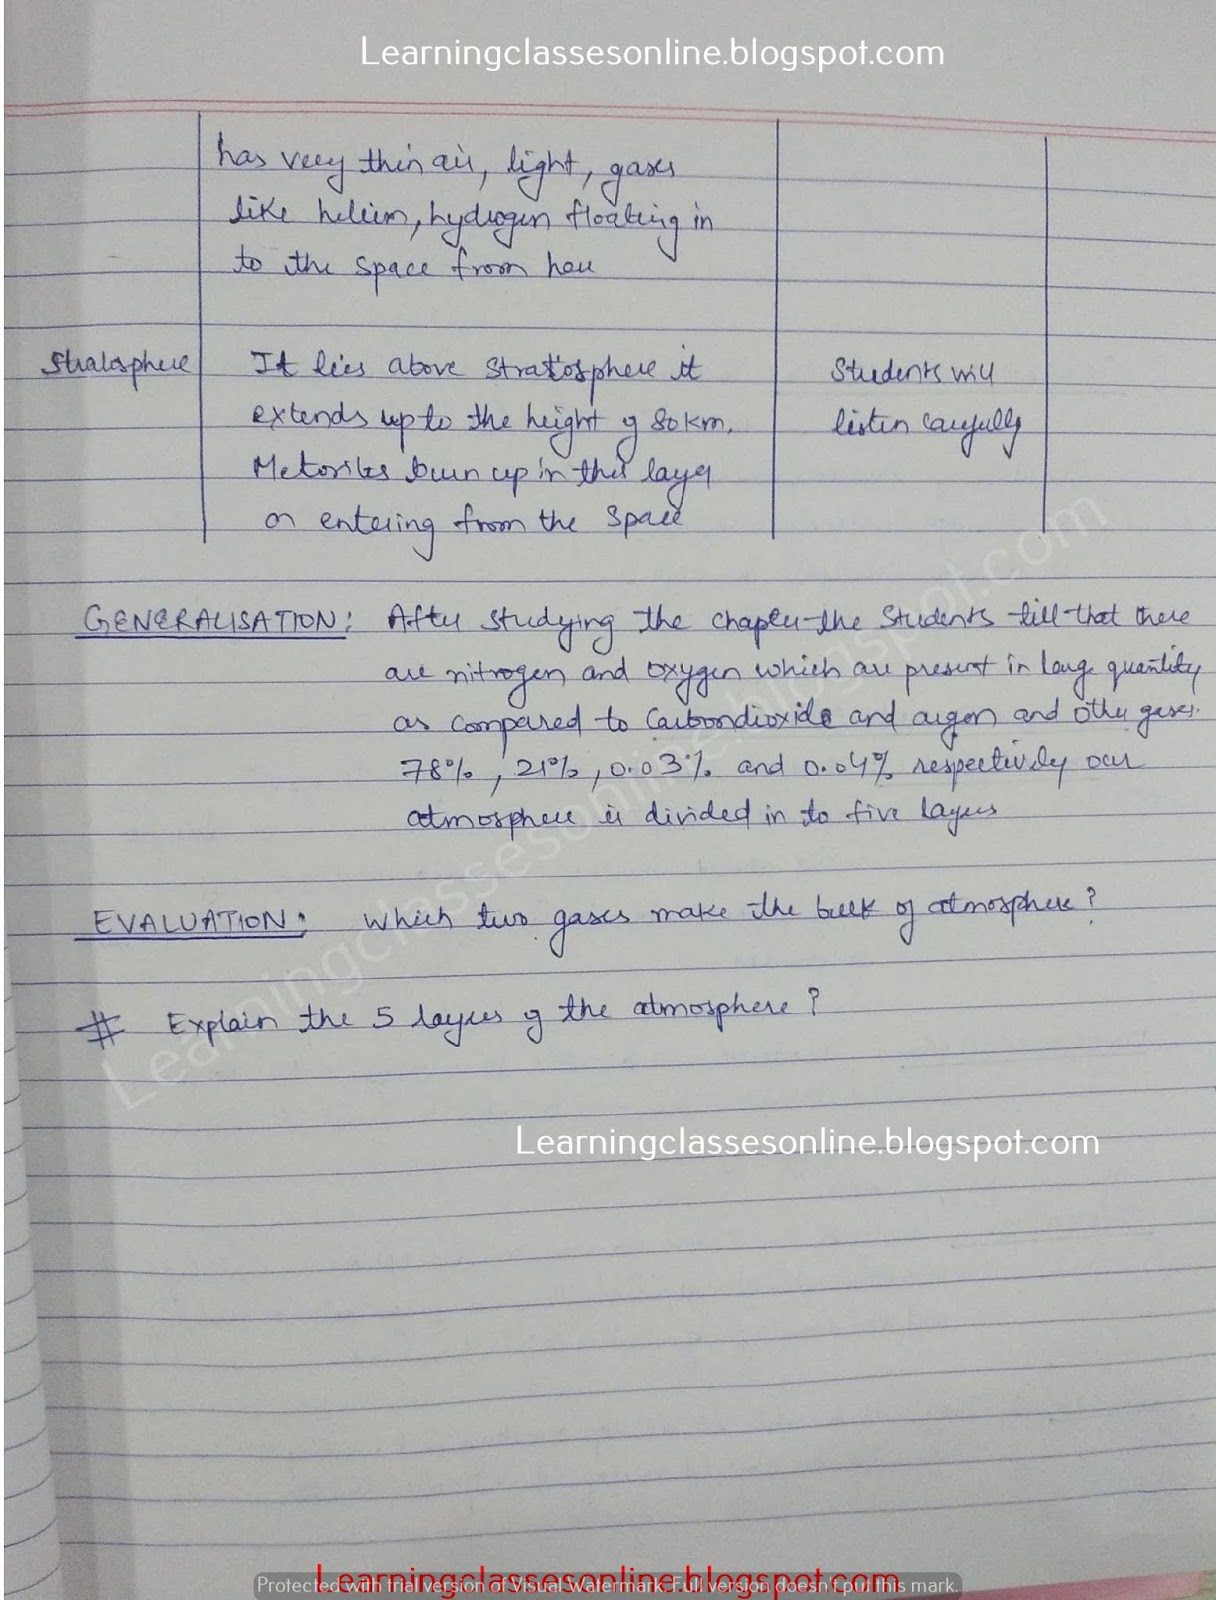 Lesson Plan Social Science Class 7 On Atmosphere